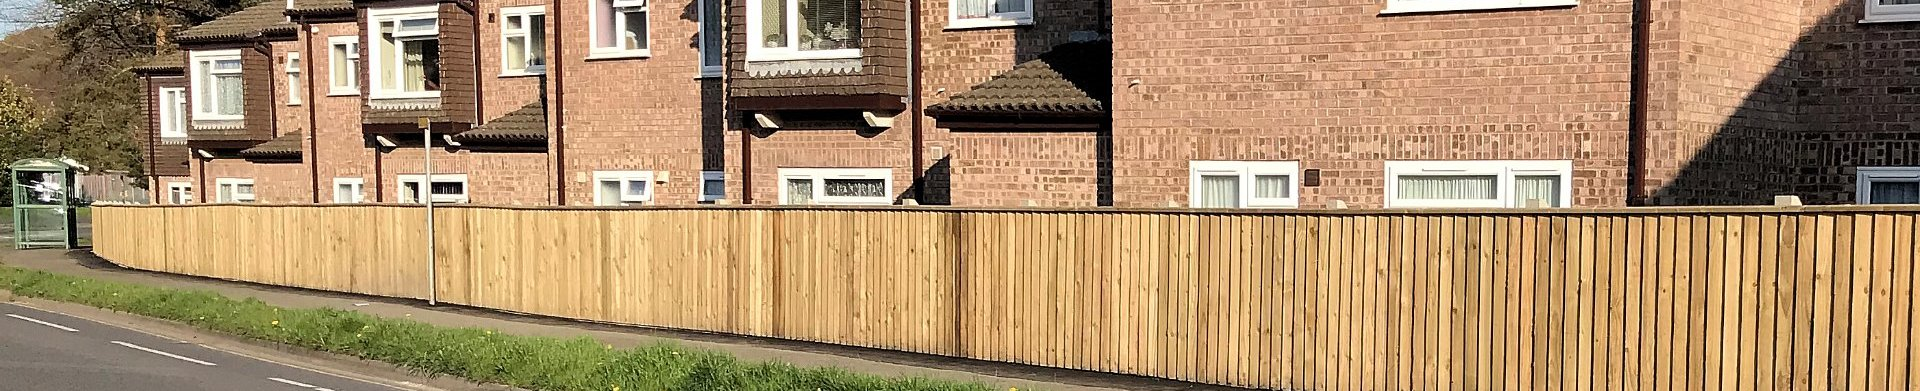 Fencing built and installed by MJS Building and Maintenance in Devon